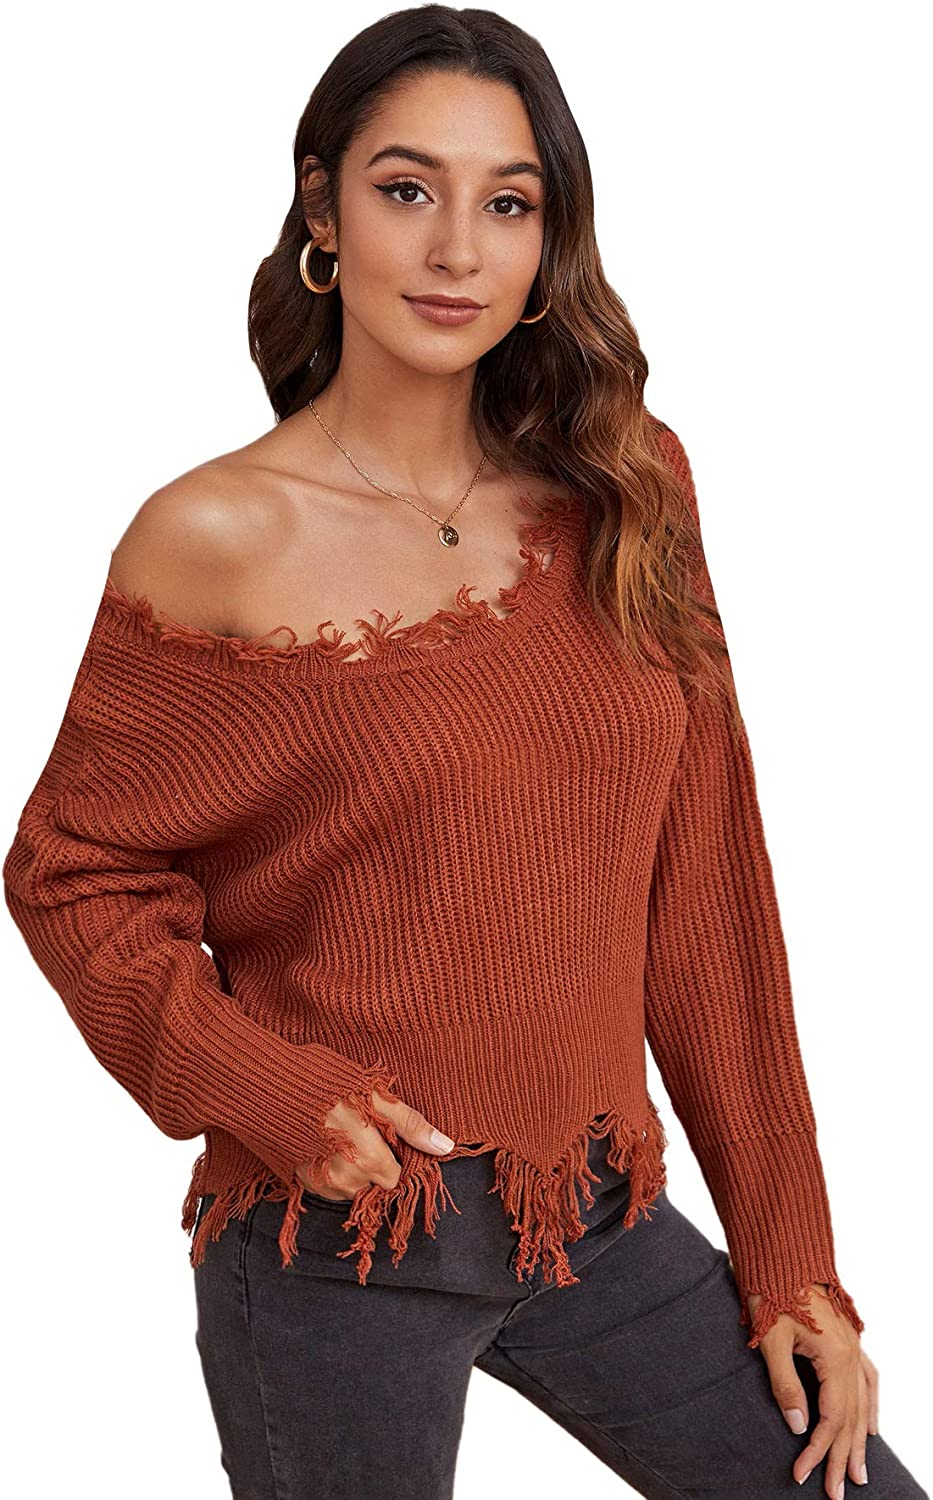 Verdusa Women's Ripped Scoop Neck Long Sleeve Frayed Knitted Pullover Sweater Top